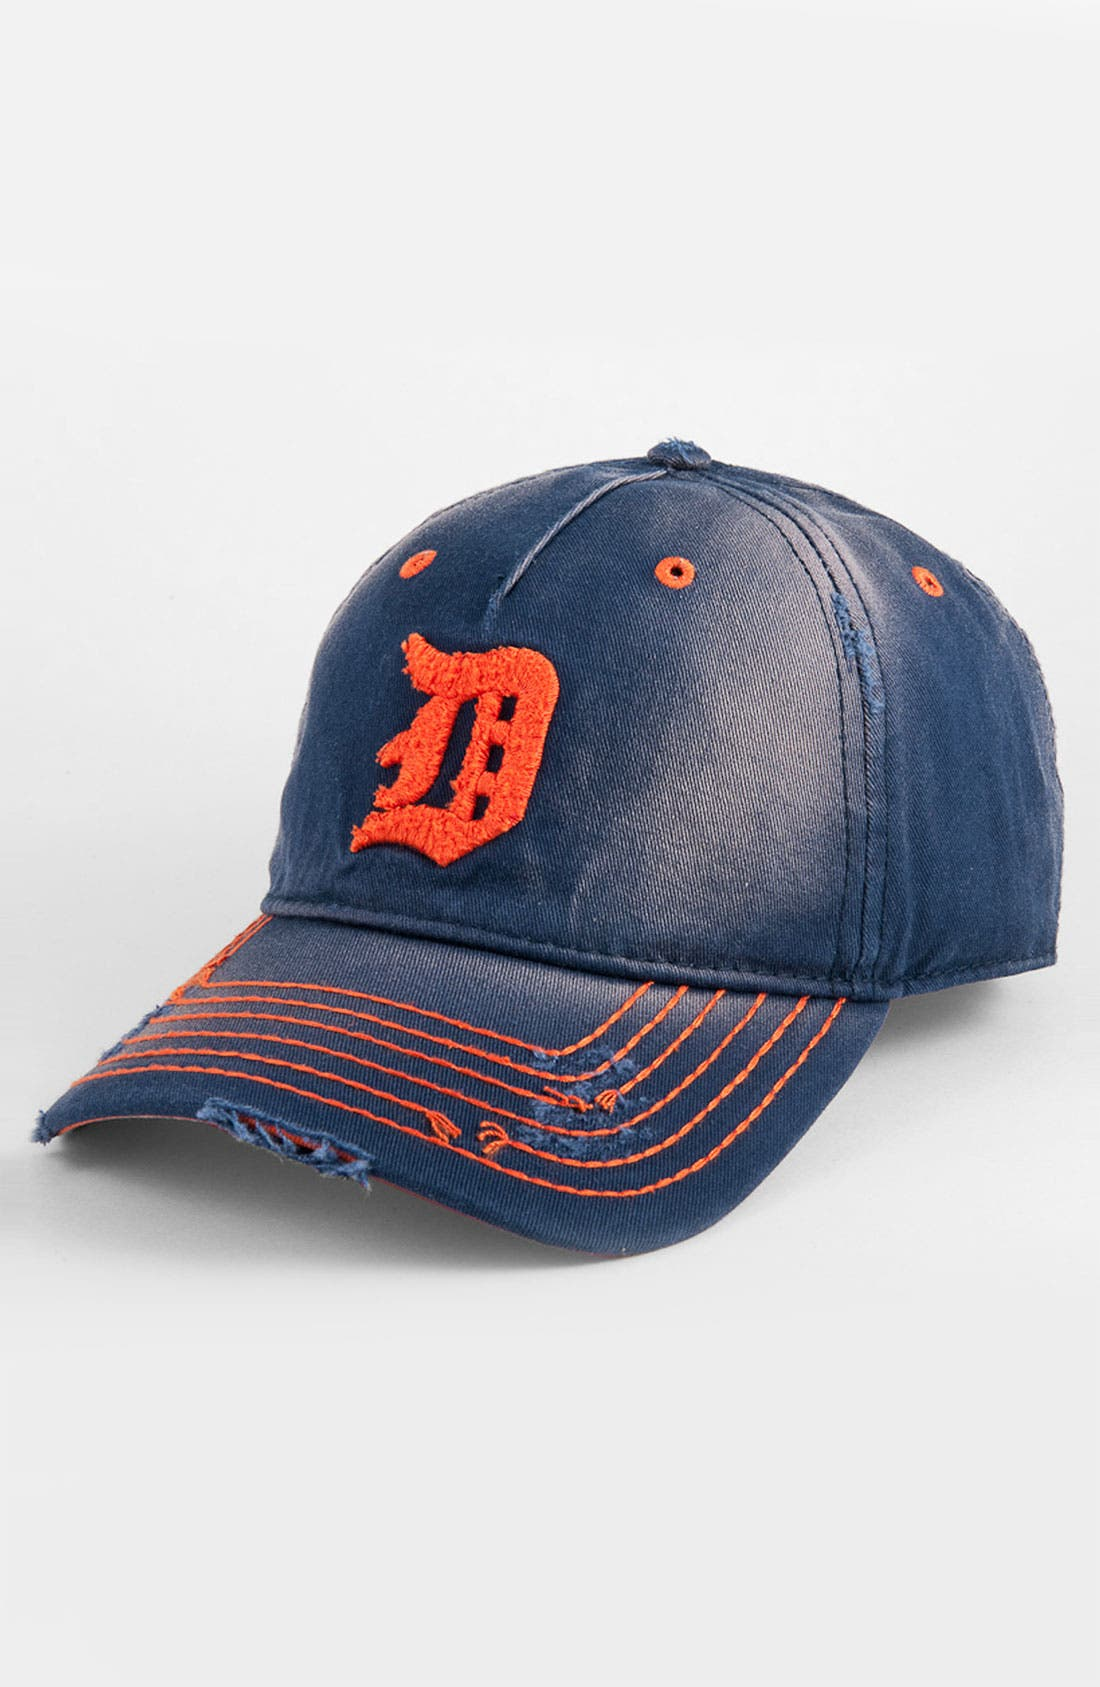 Alternate Image 1 Selected - American Needle 'Detroit Tigers' Distressed Cap